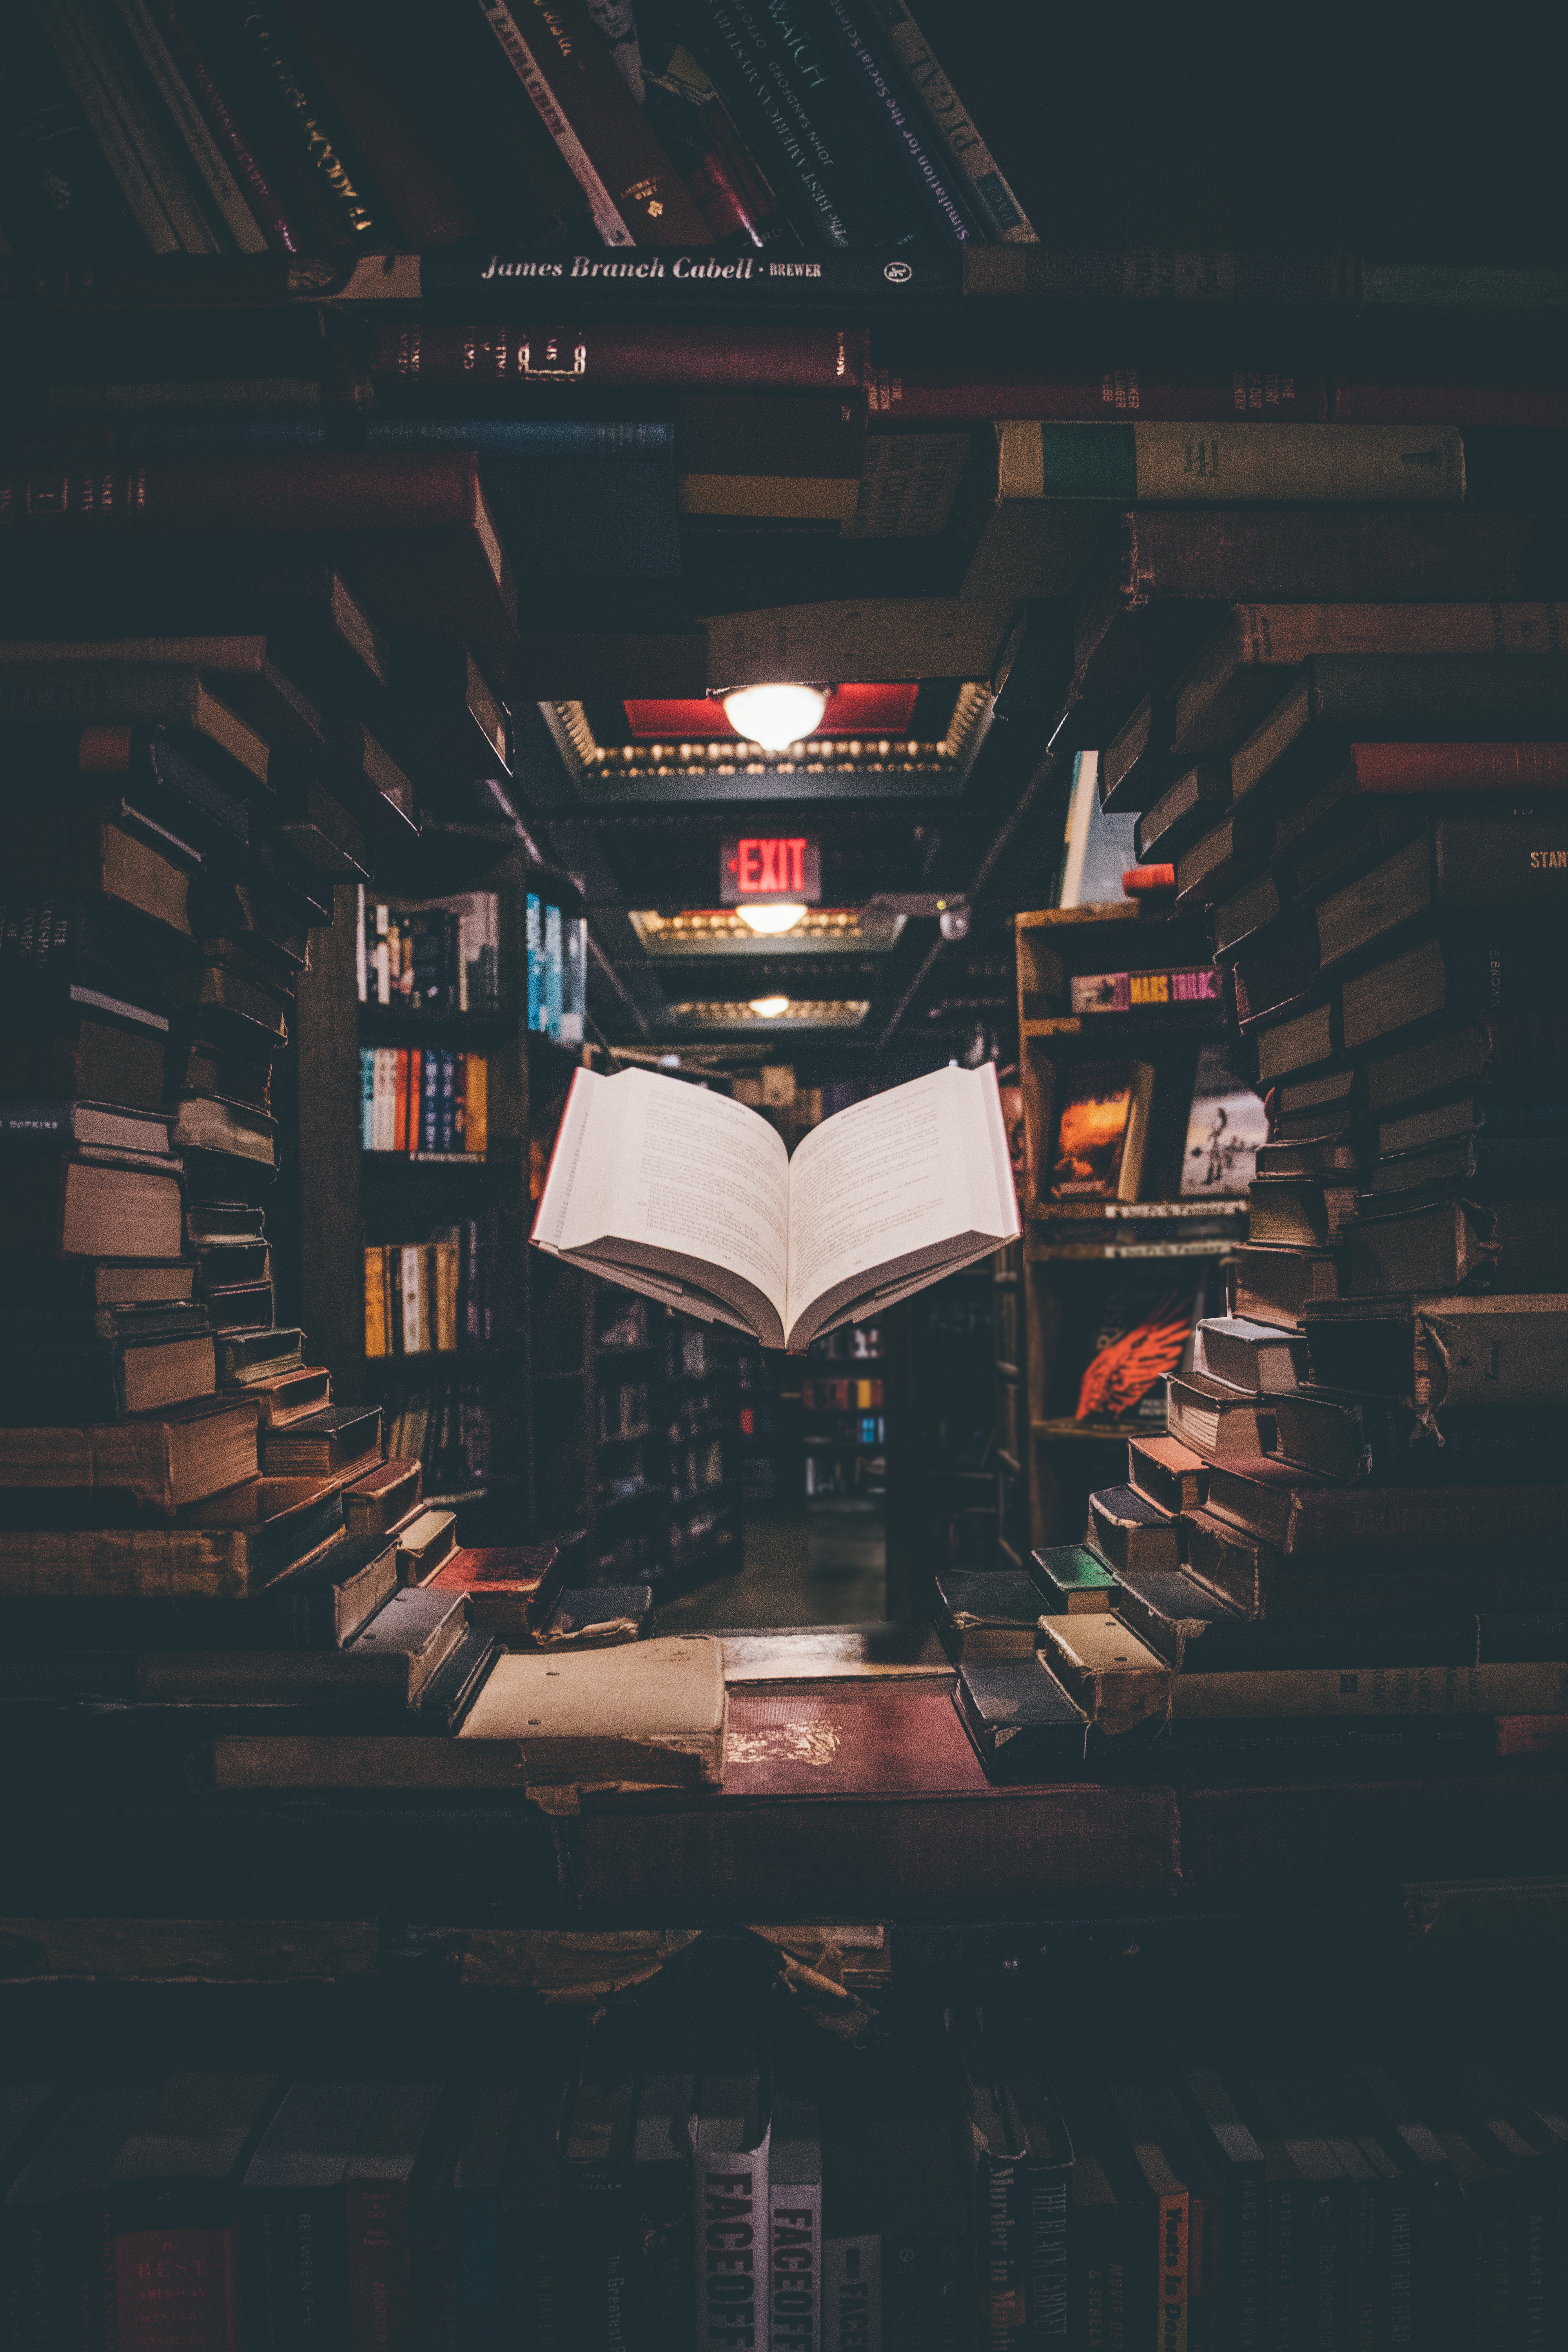 Knowledge Quotes Wallpapers 4k Best 500 Library Pictures Hd Download Free Images On